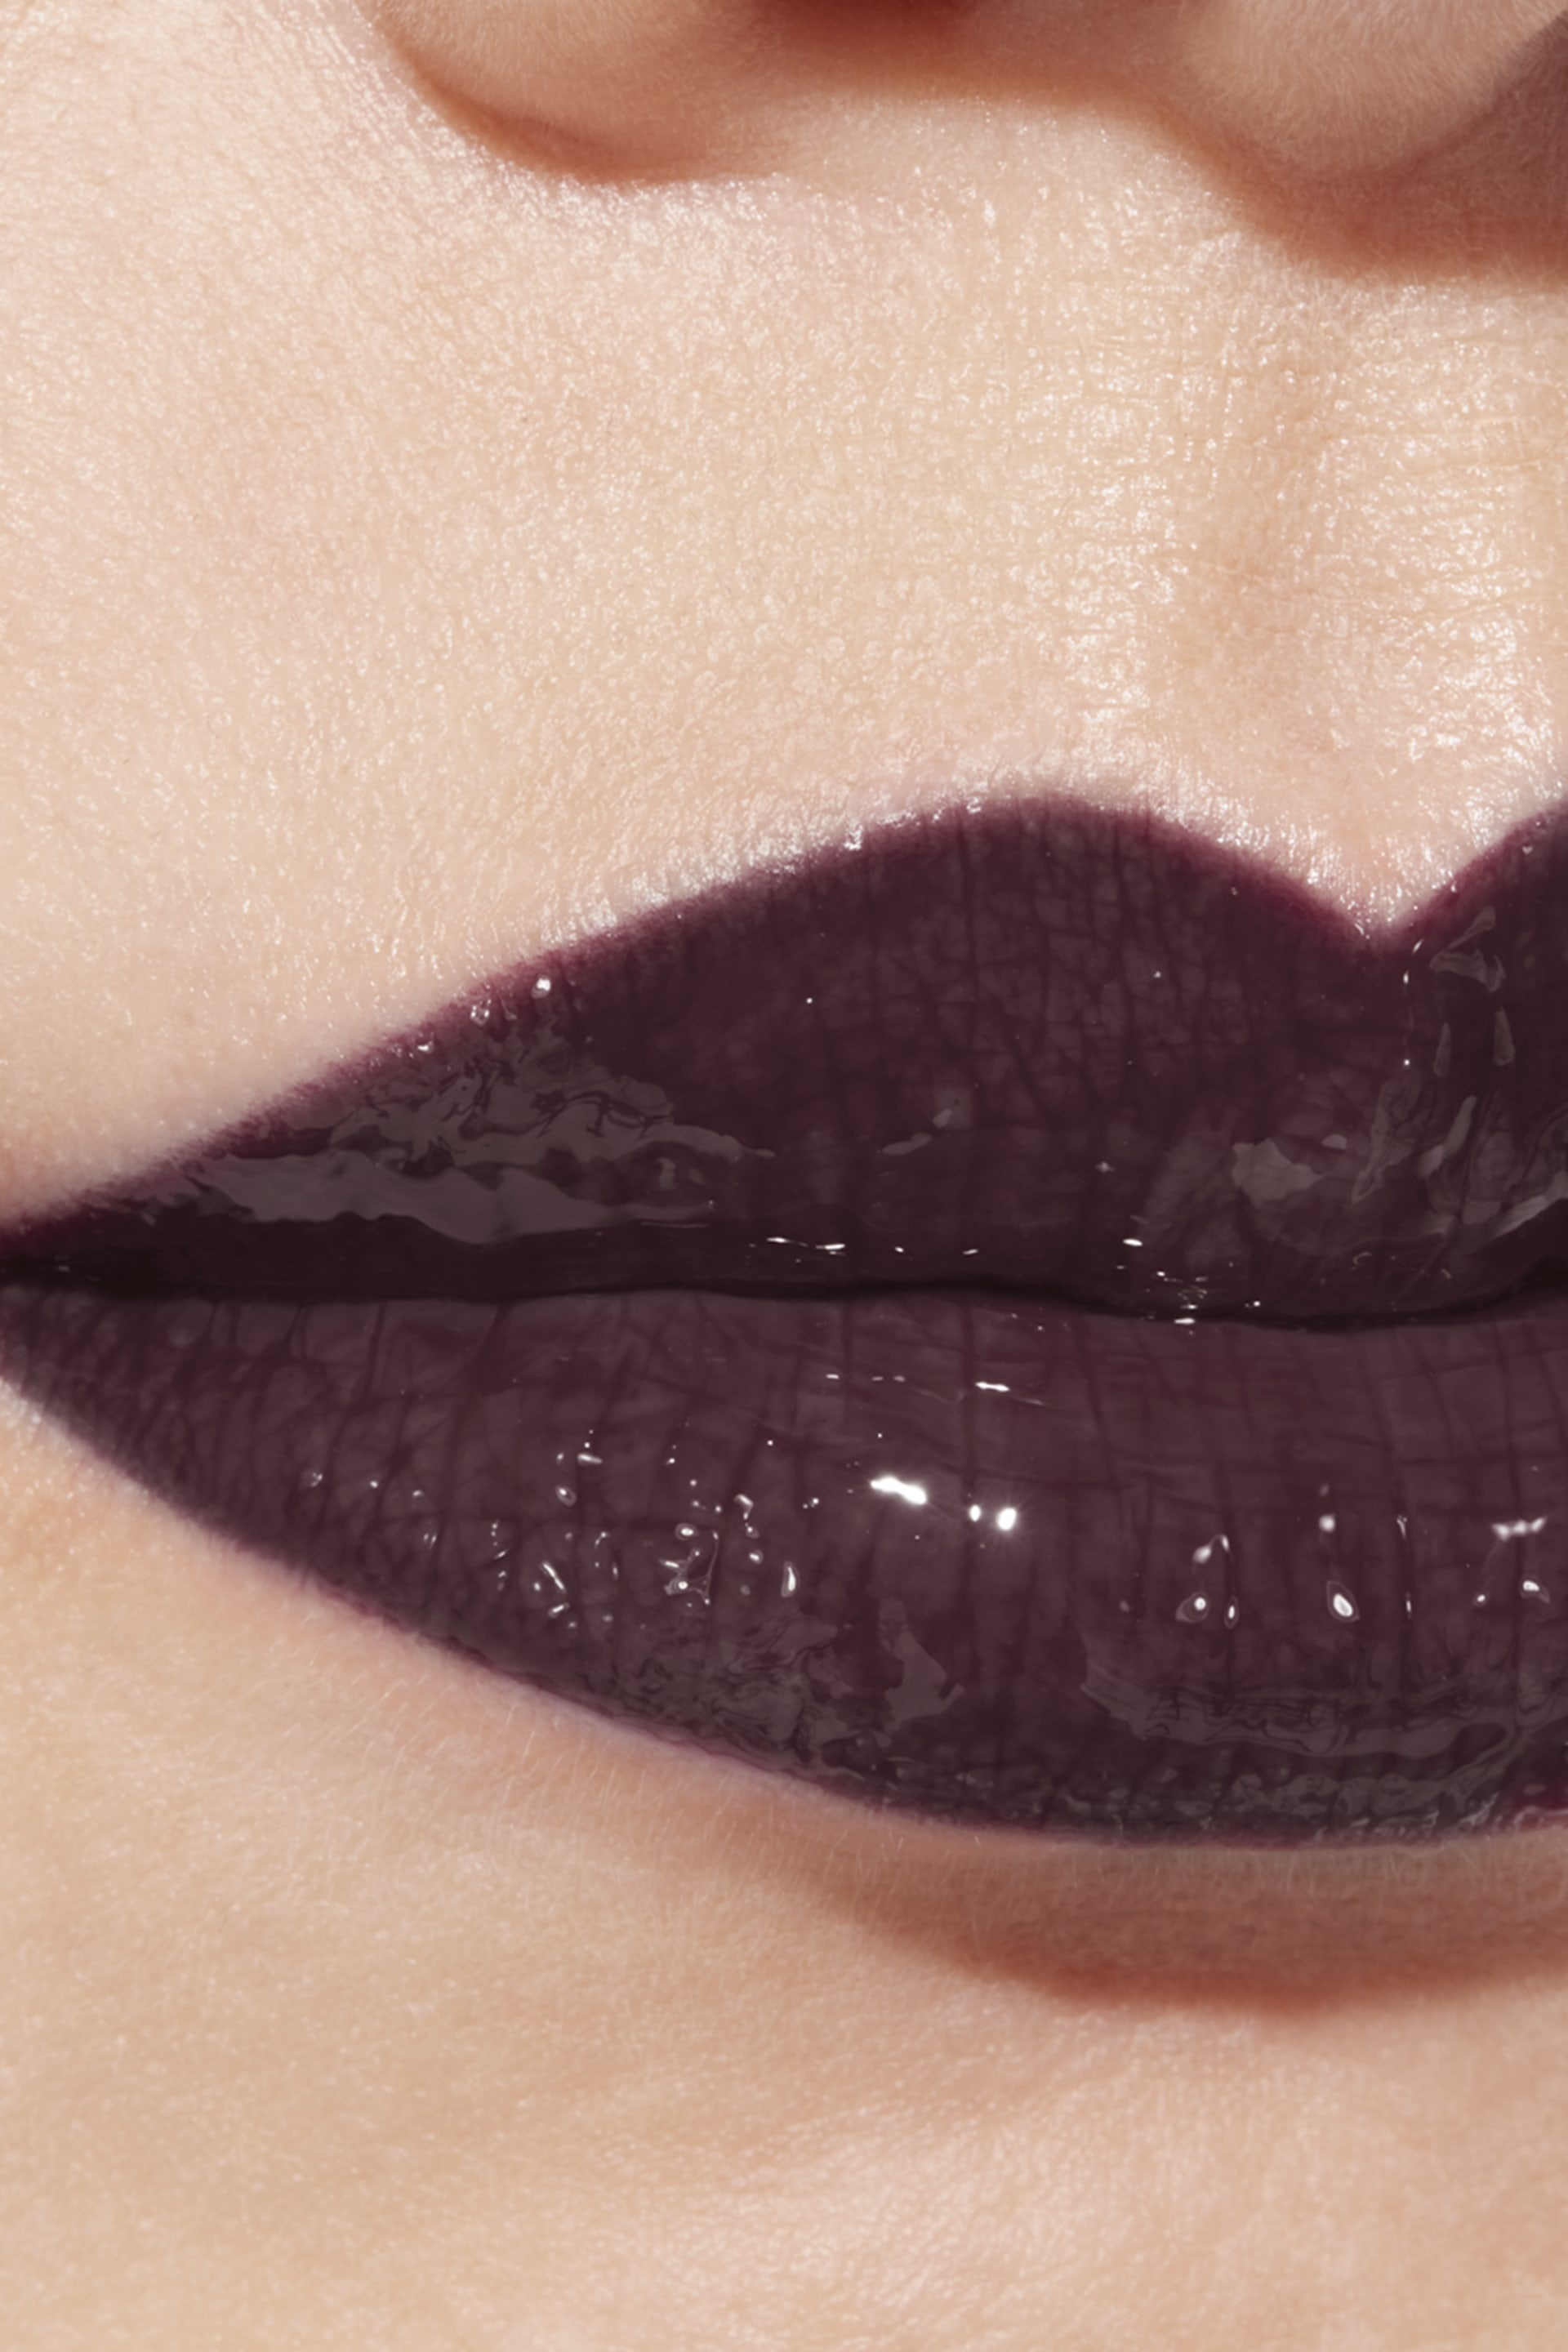 Application makeup visual 1 - ROUGE COCO GLOSS 816 - LAQUE NOIRE